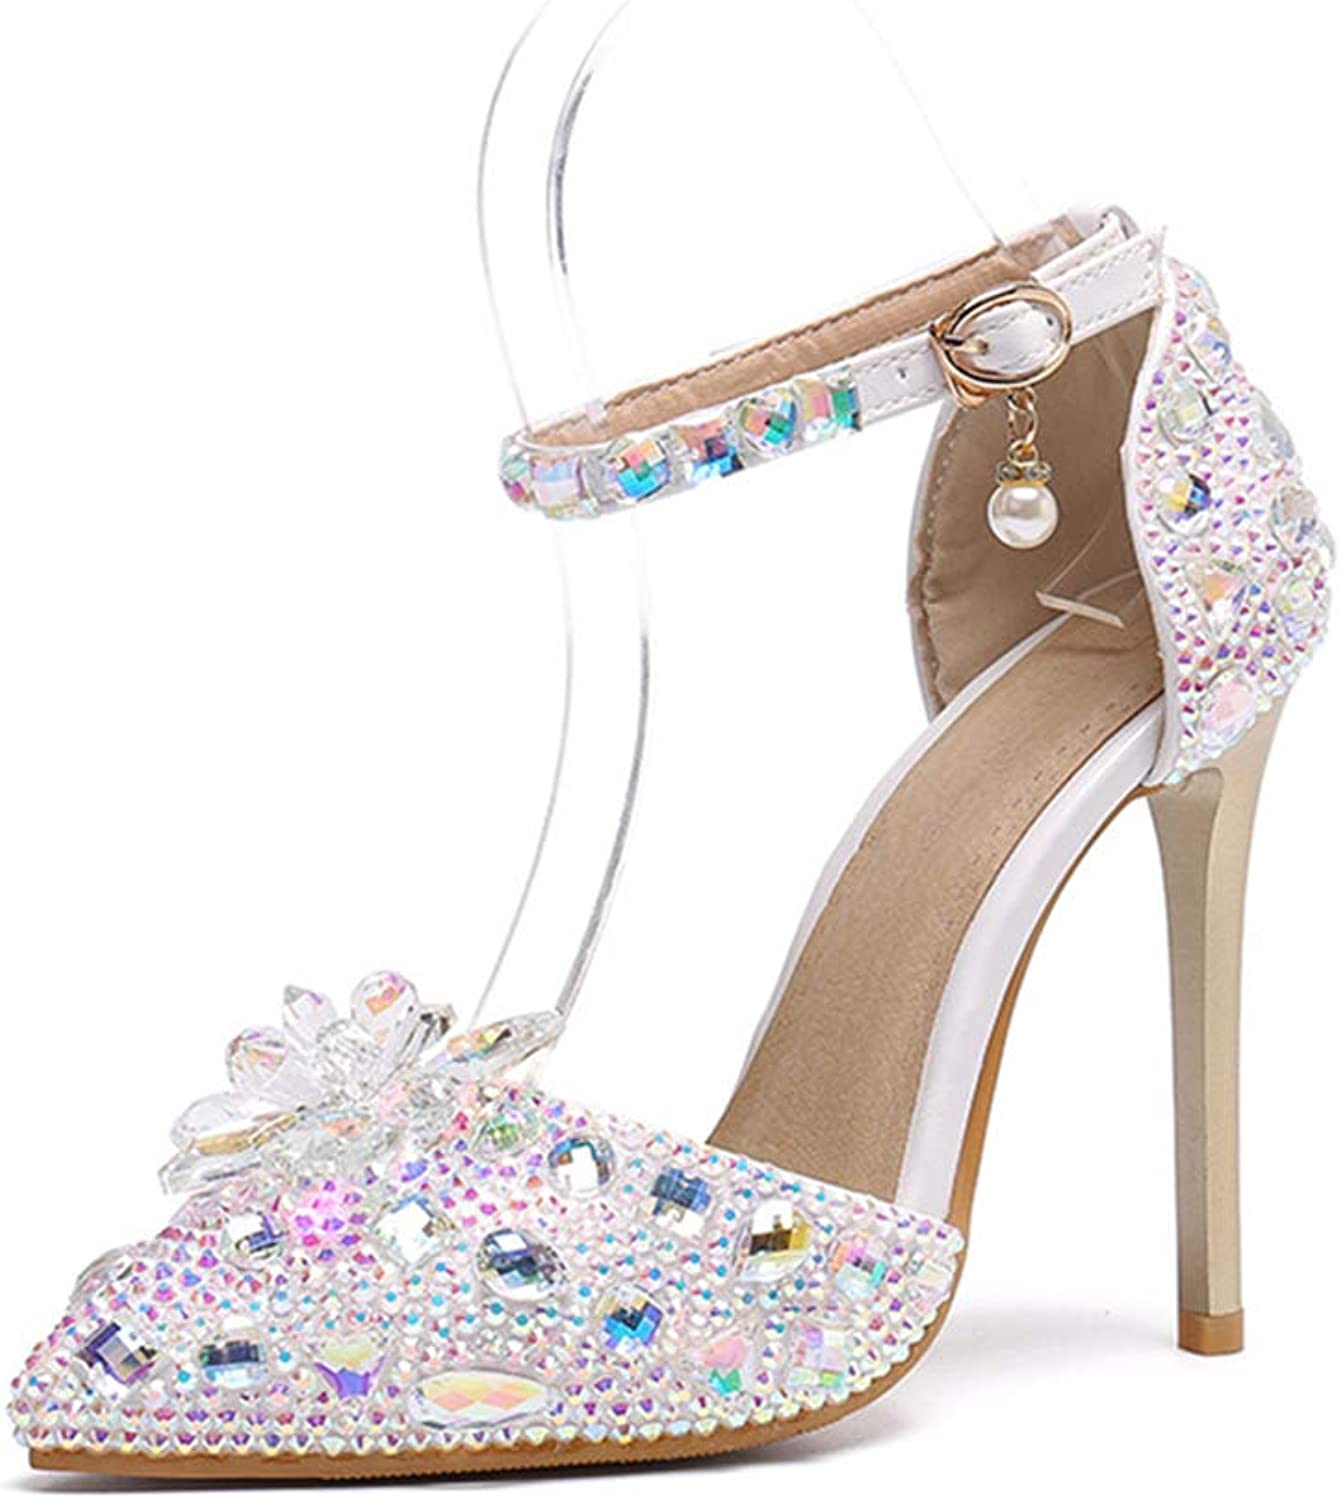 Women's Ankle Strap Pump Stiletto Heels Sandals Court shoes Party Dress Wedding Evening Rhinestones High Heel Pointed Toe